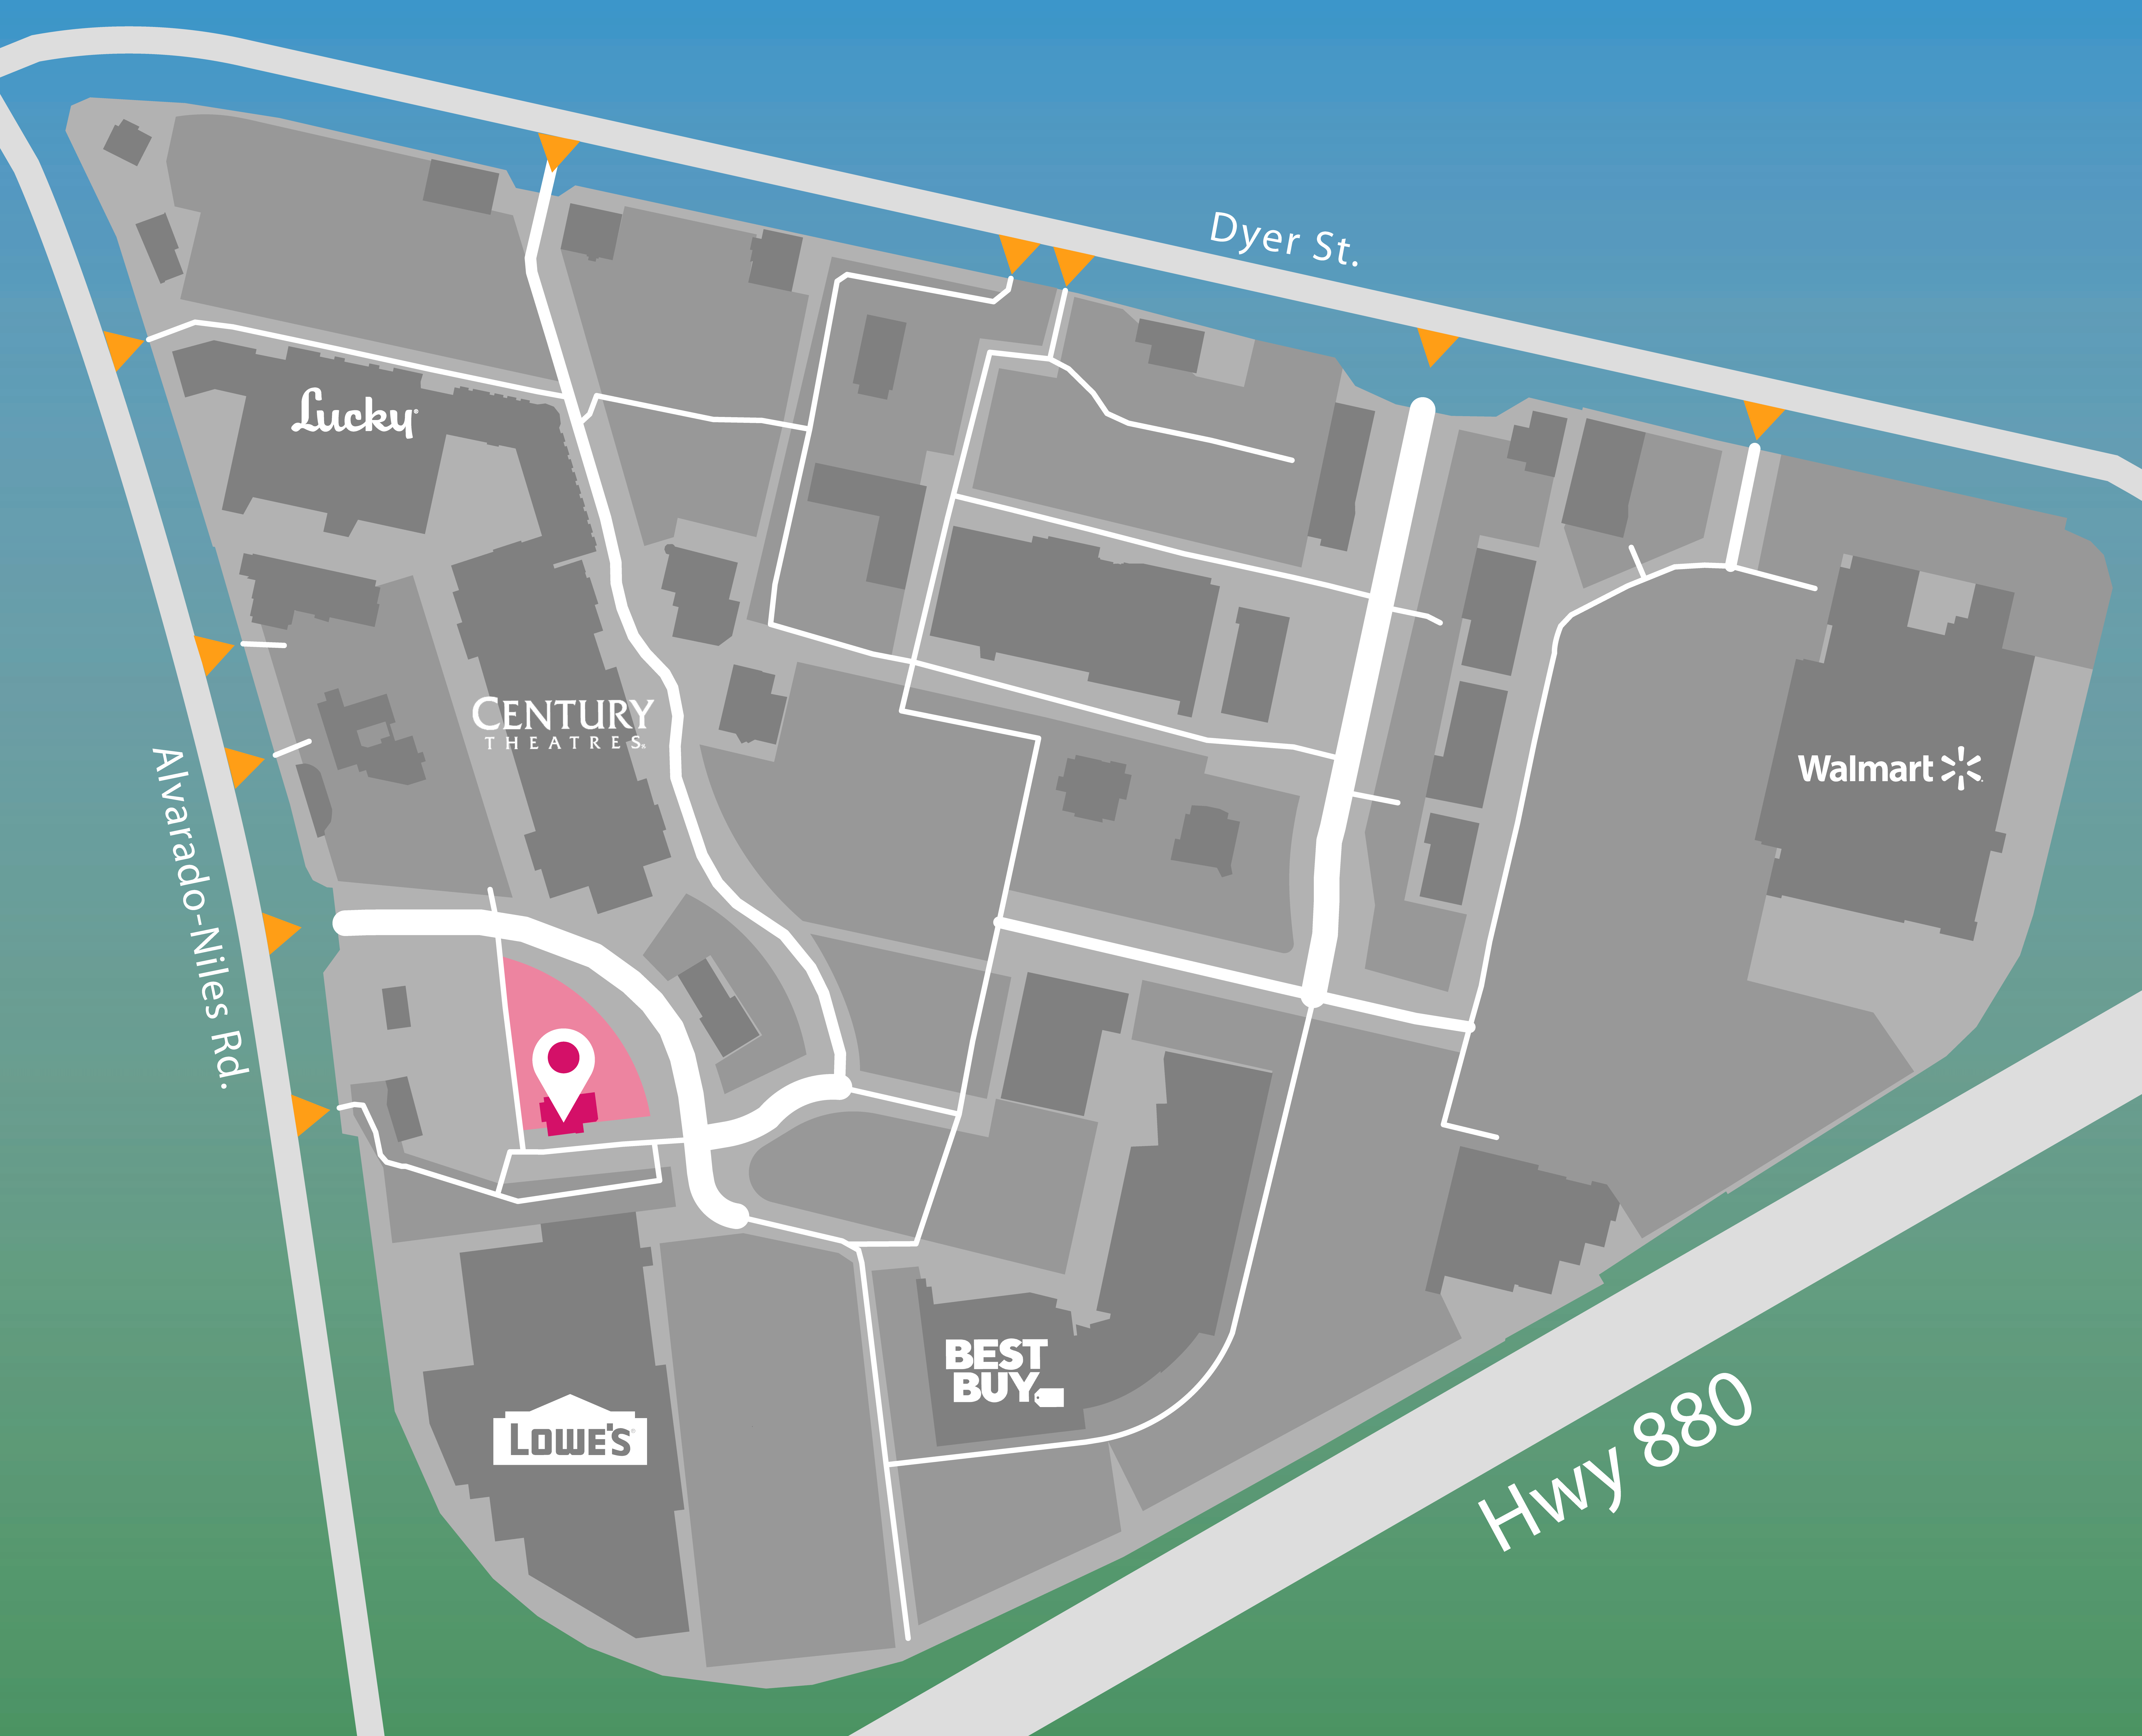 Parking map for In-N-Out Burger.